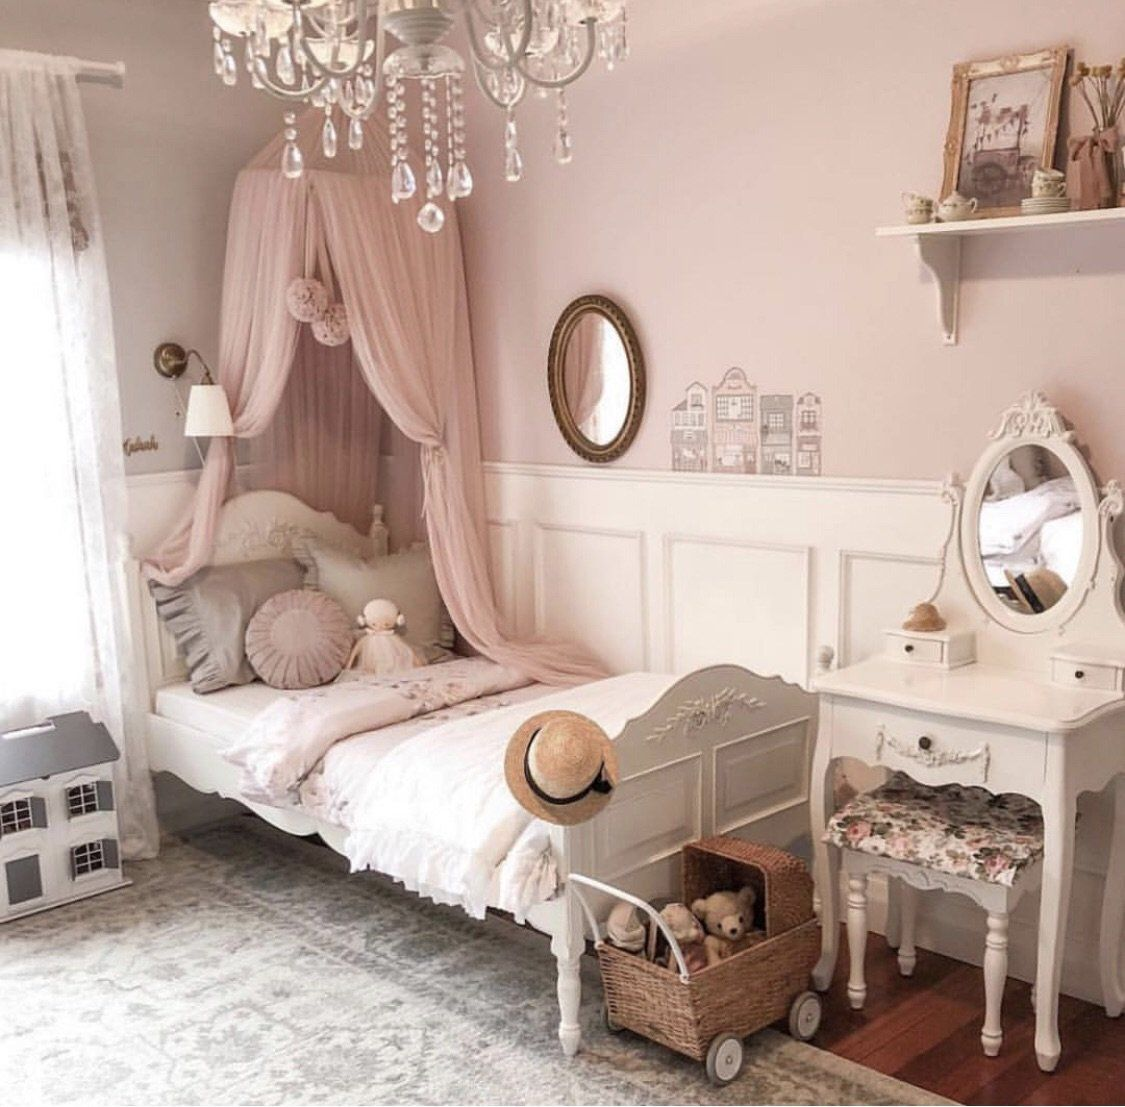 Dreamy Canopy - Champagne in 2020 | Big girl bedrooms ...